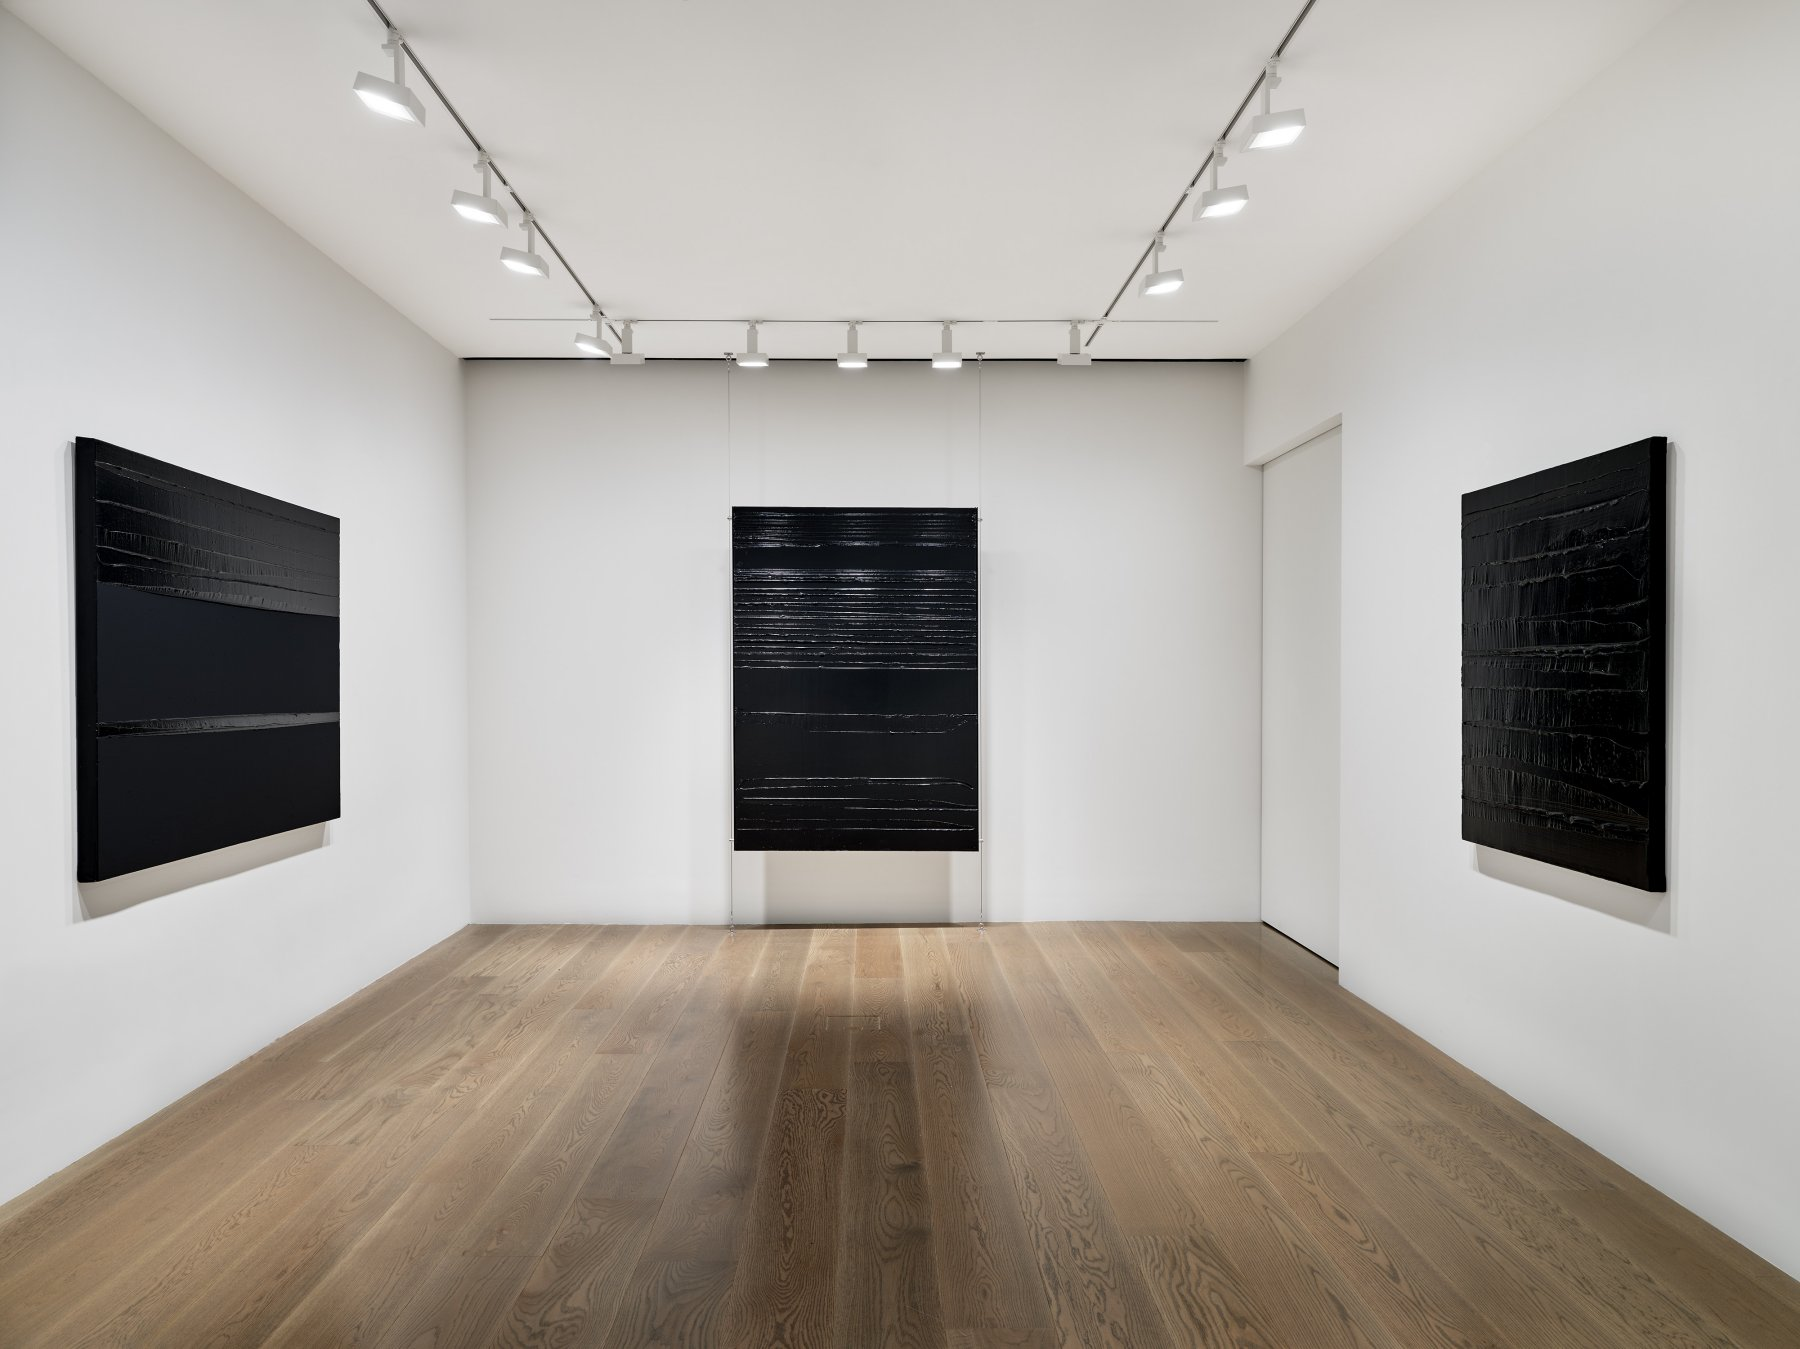 Levy Gorvy Hong Kong Pierre Soulages 1